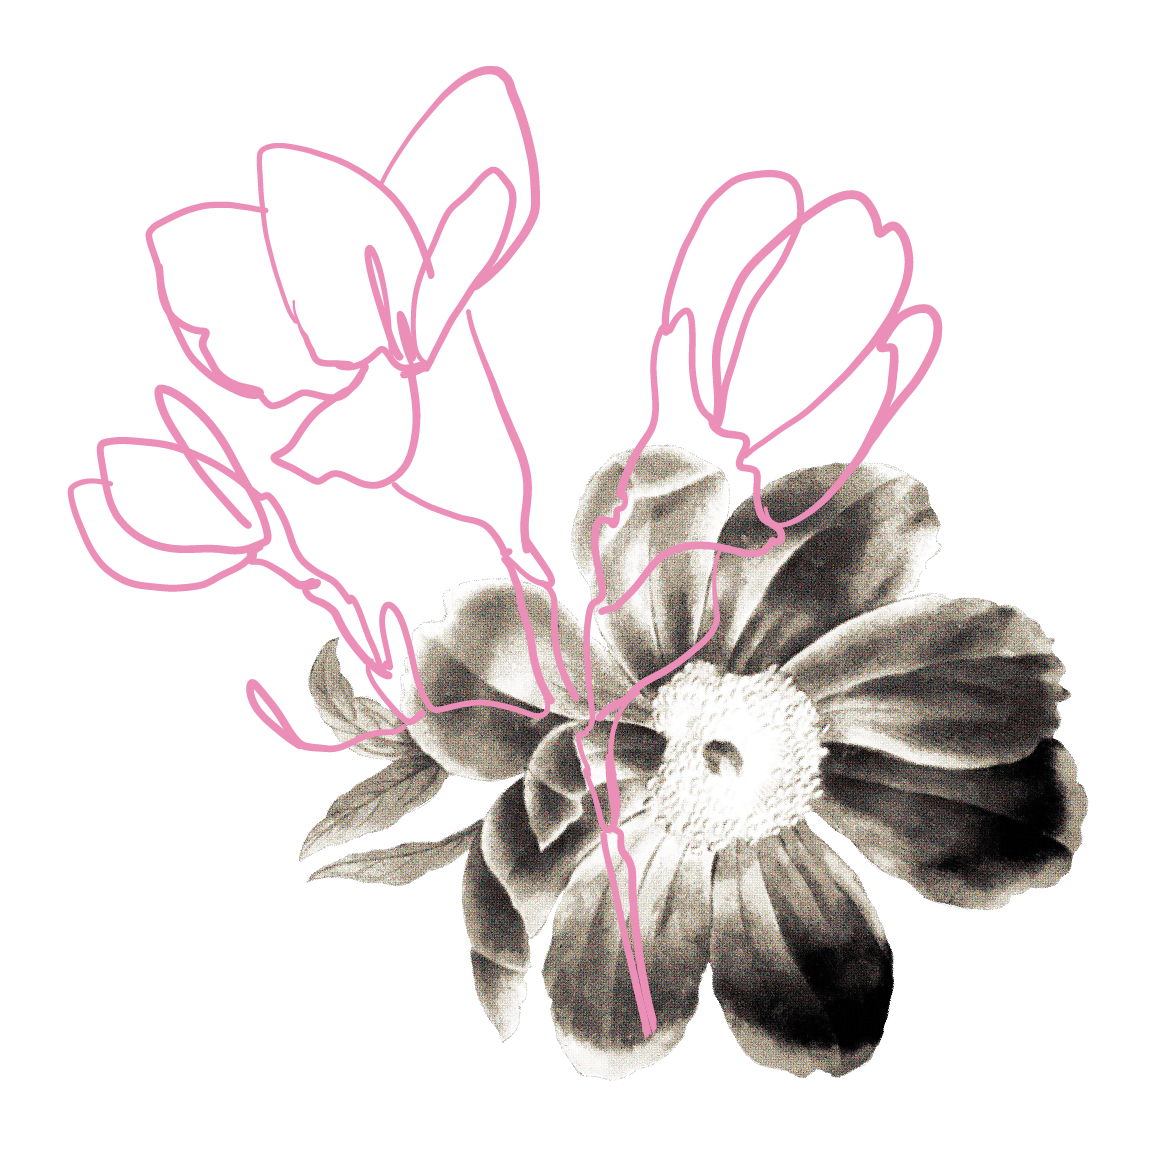 webflowers1-01.png